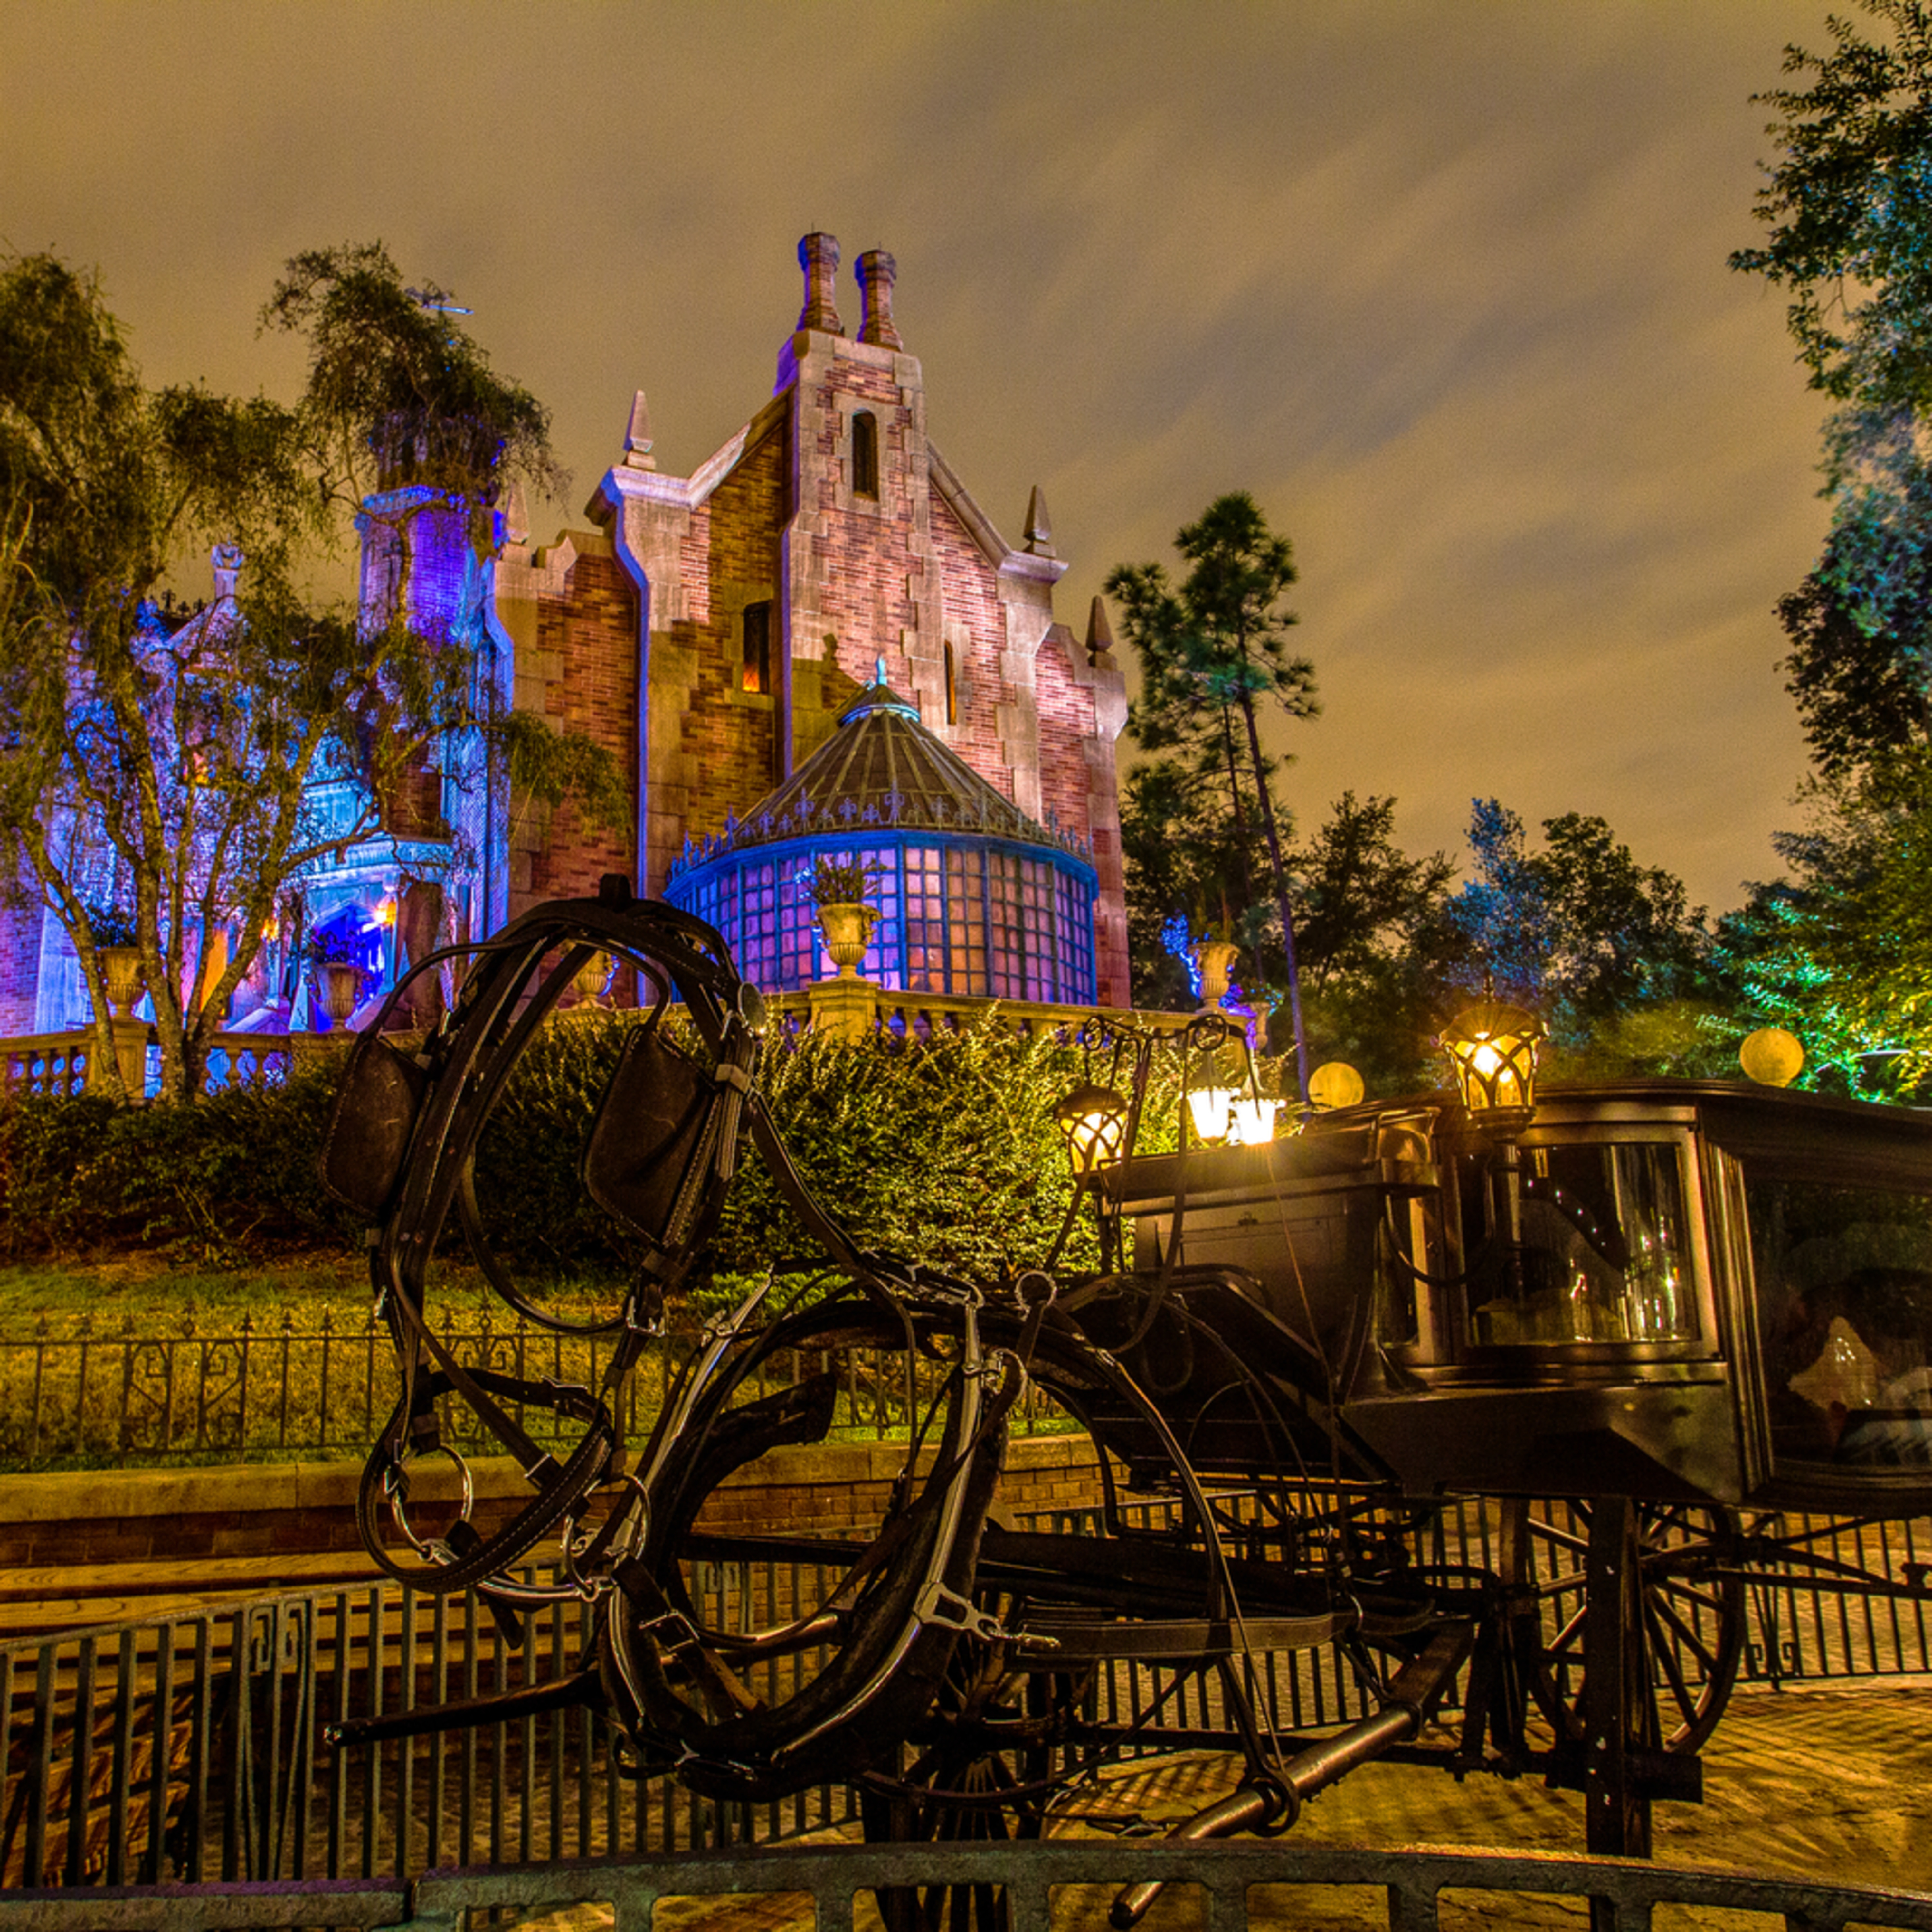 Disneys haunted mansion and stage coach lgibye